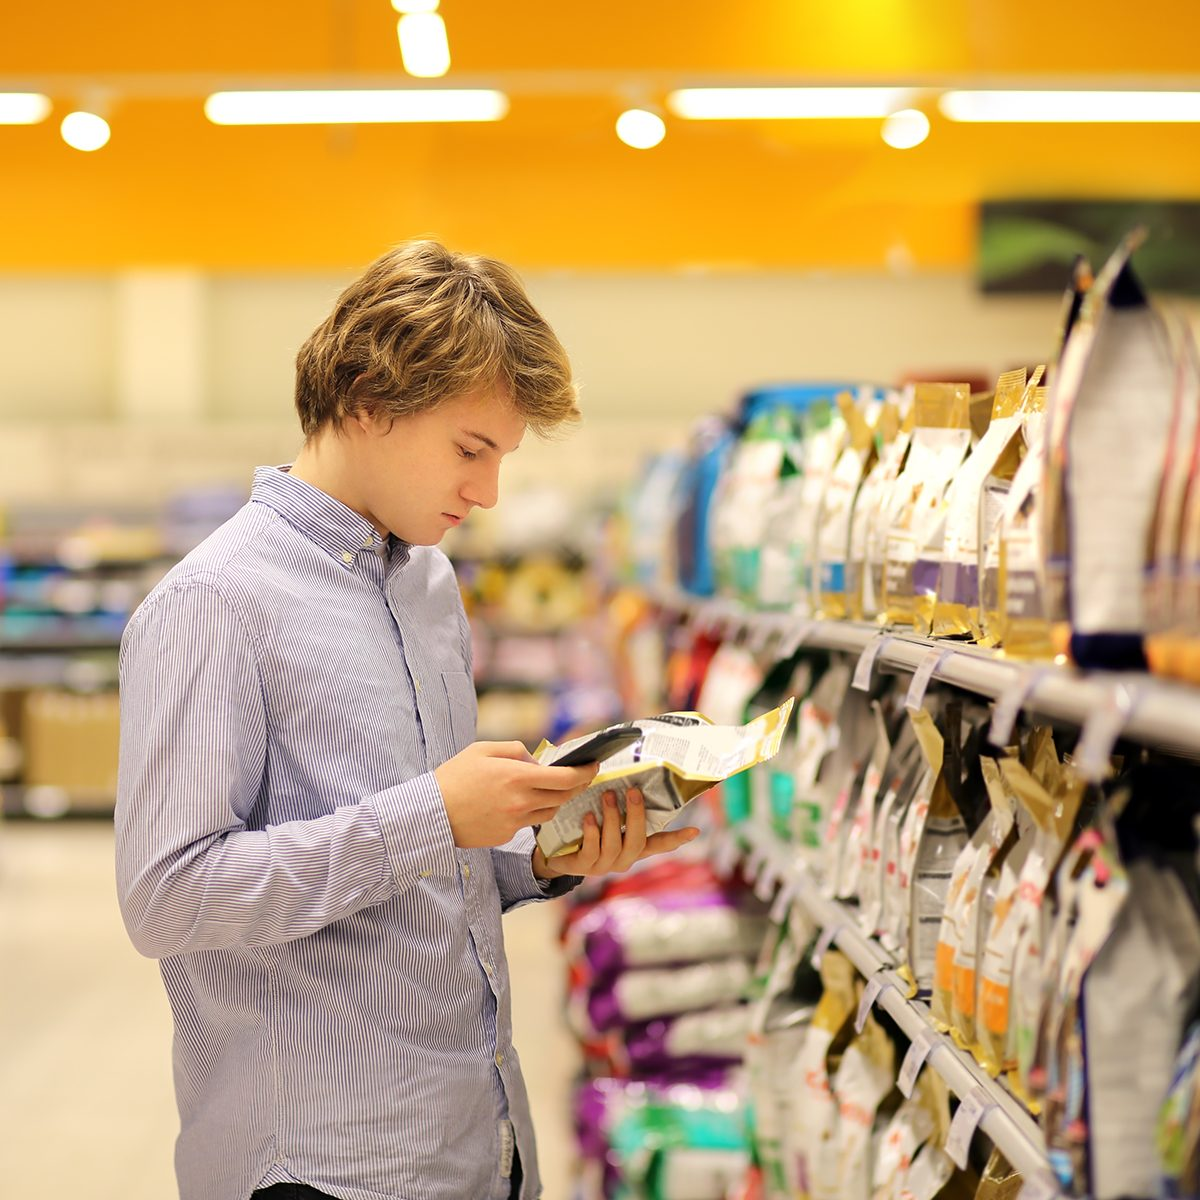 Man shopping in supermarket reading product information.Using smarthone.Pet food